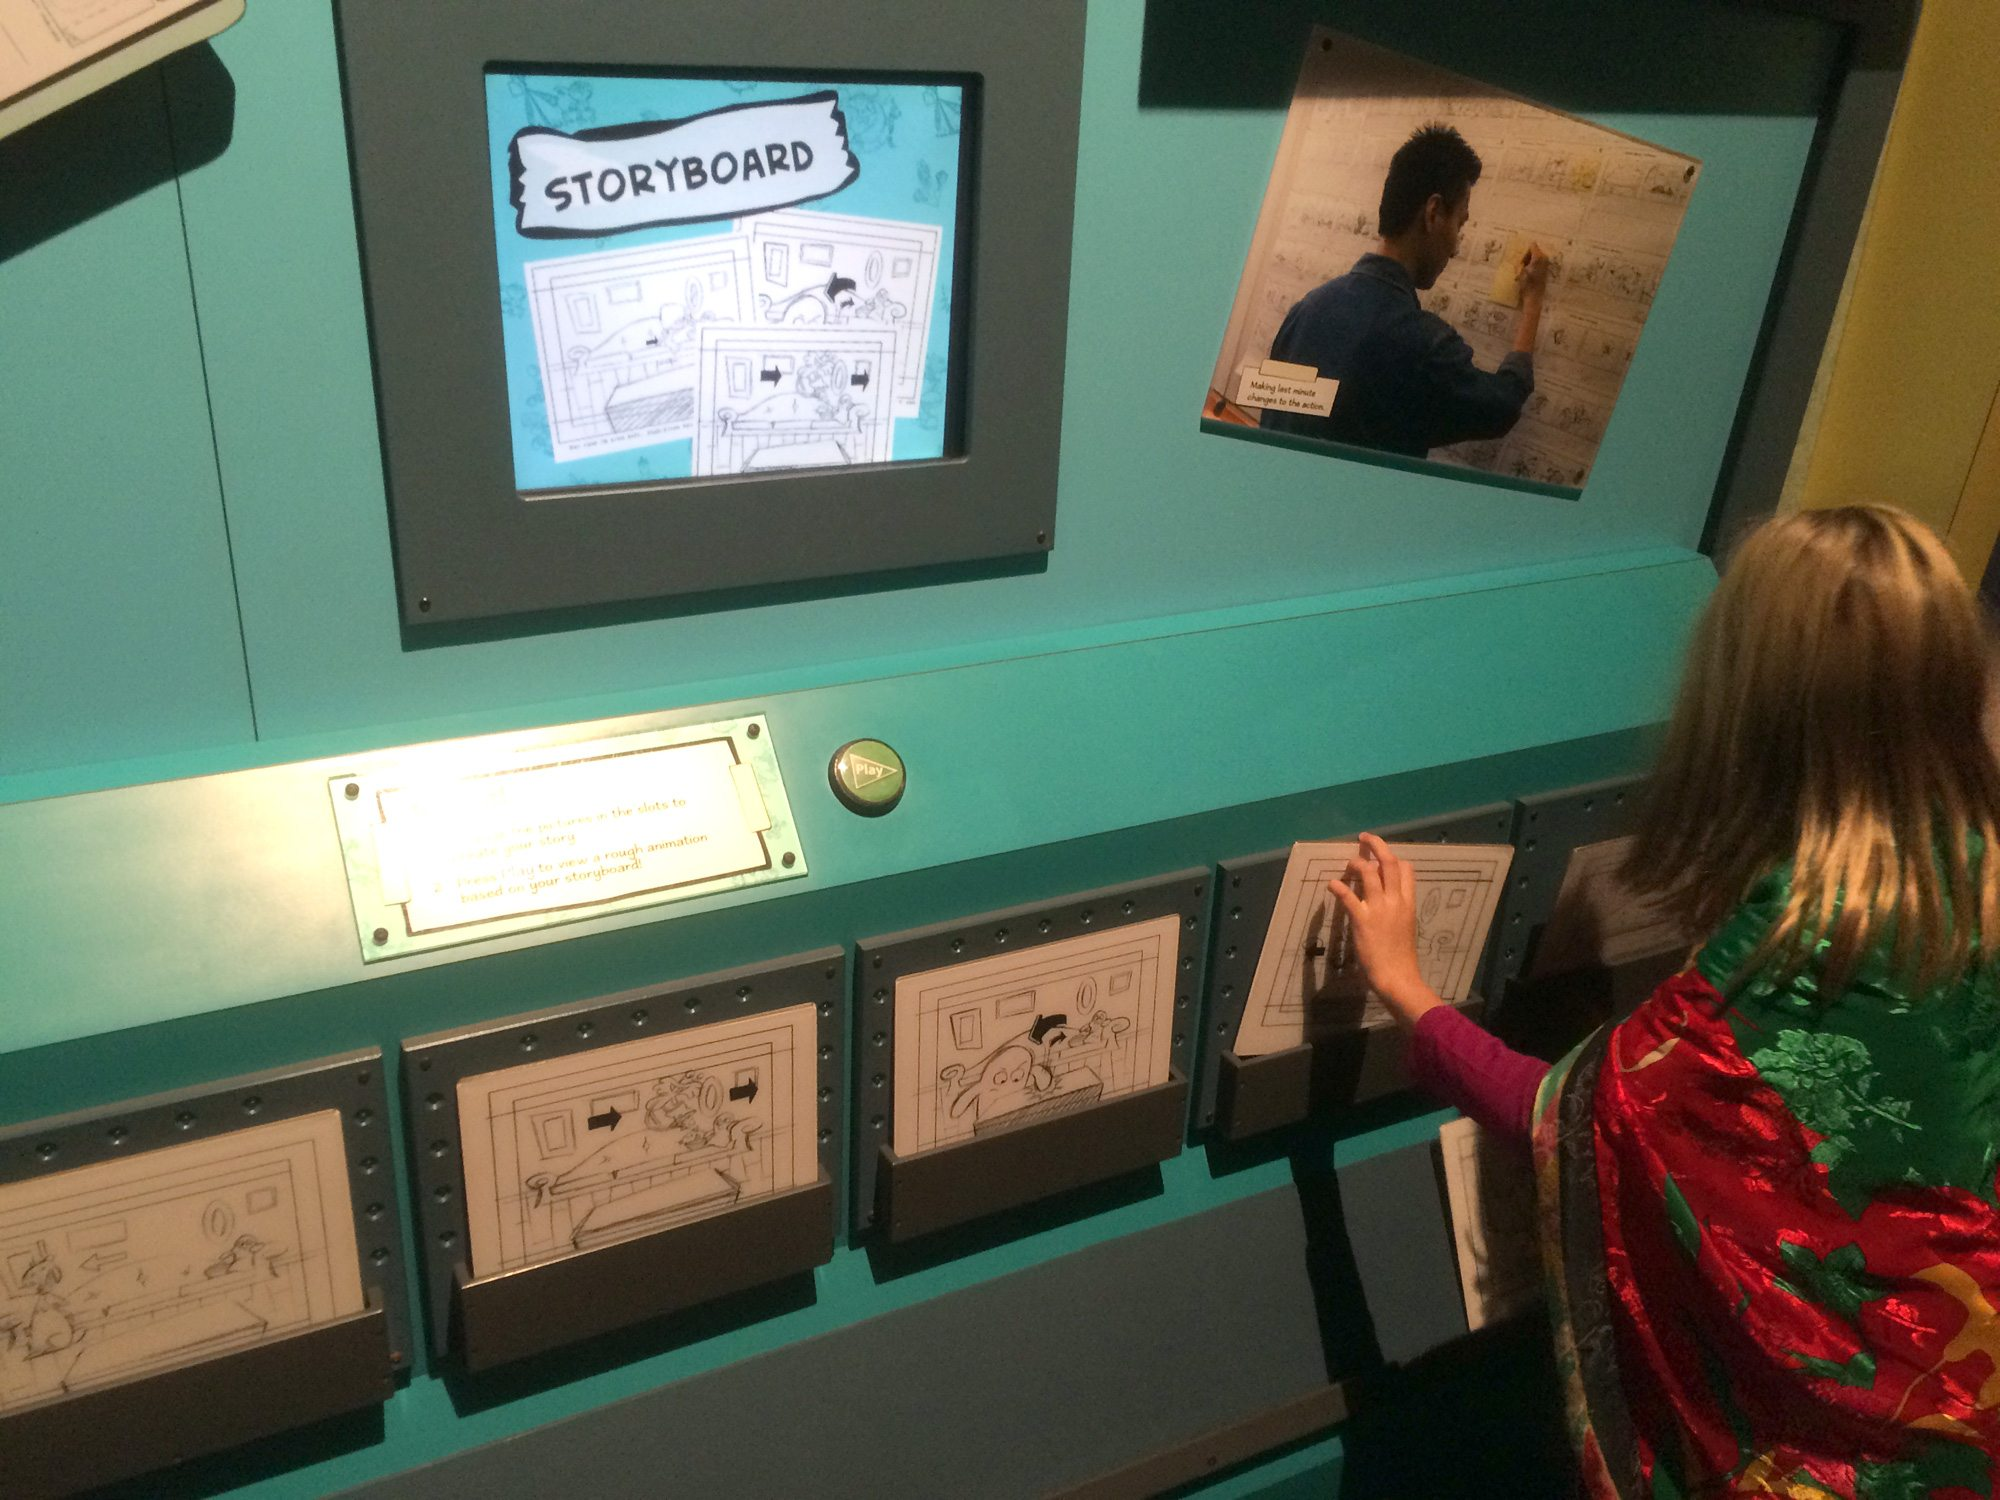 OMSI Animation storyboard